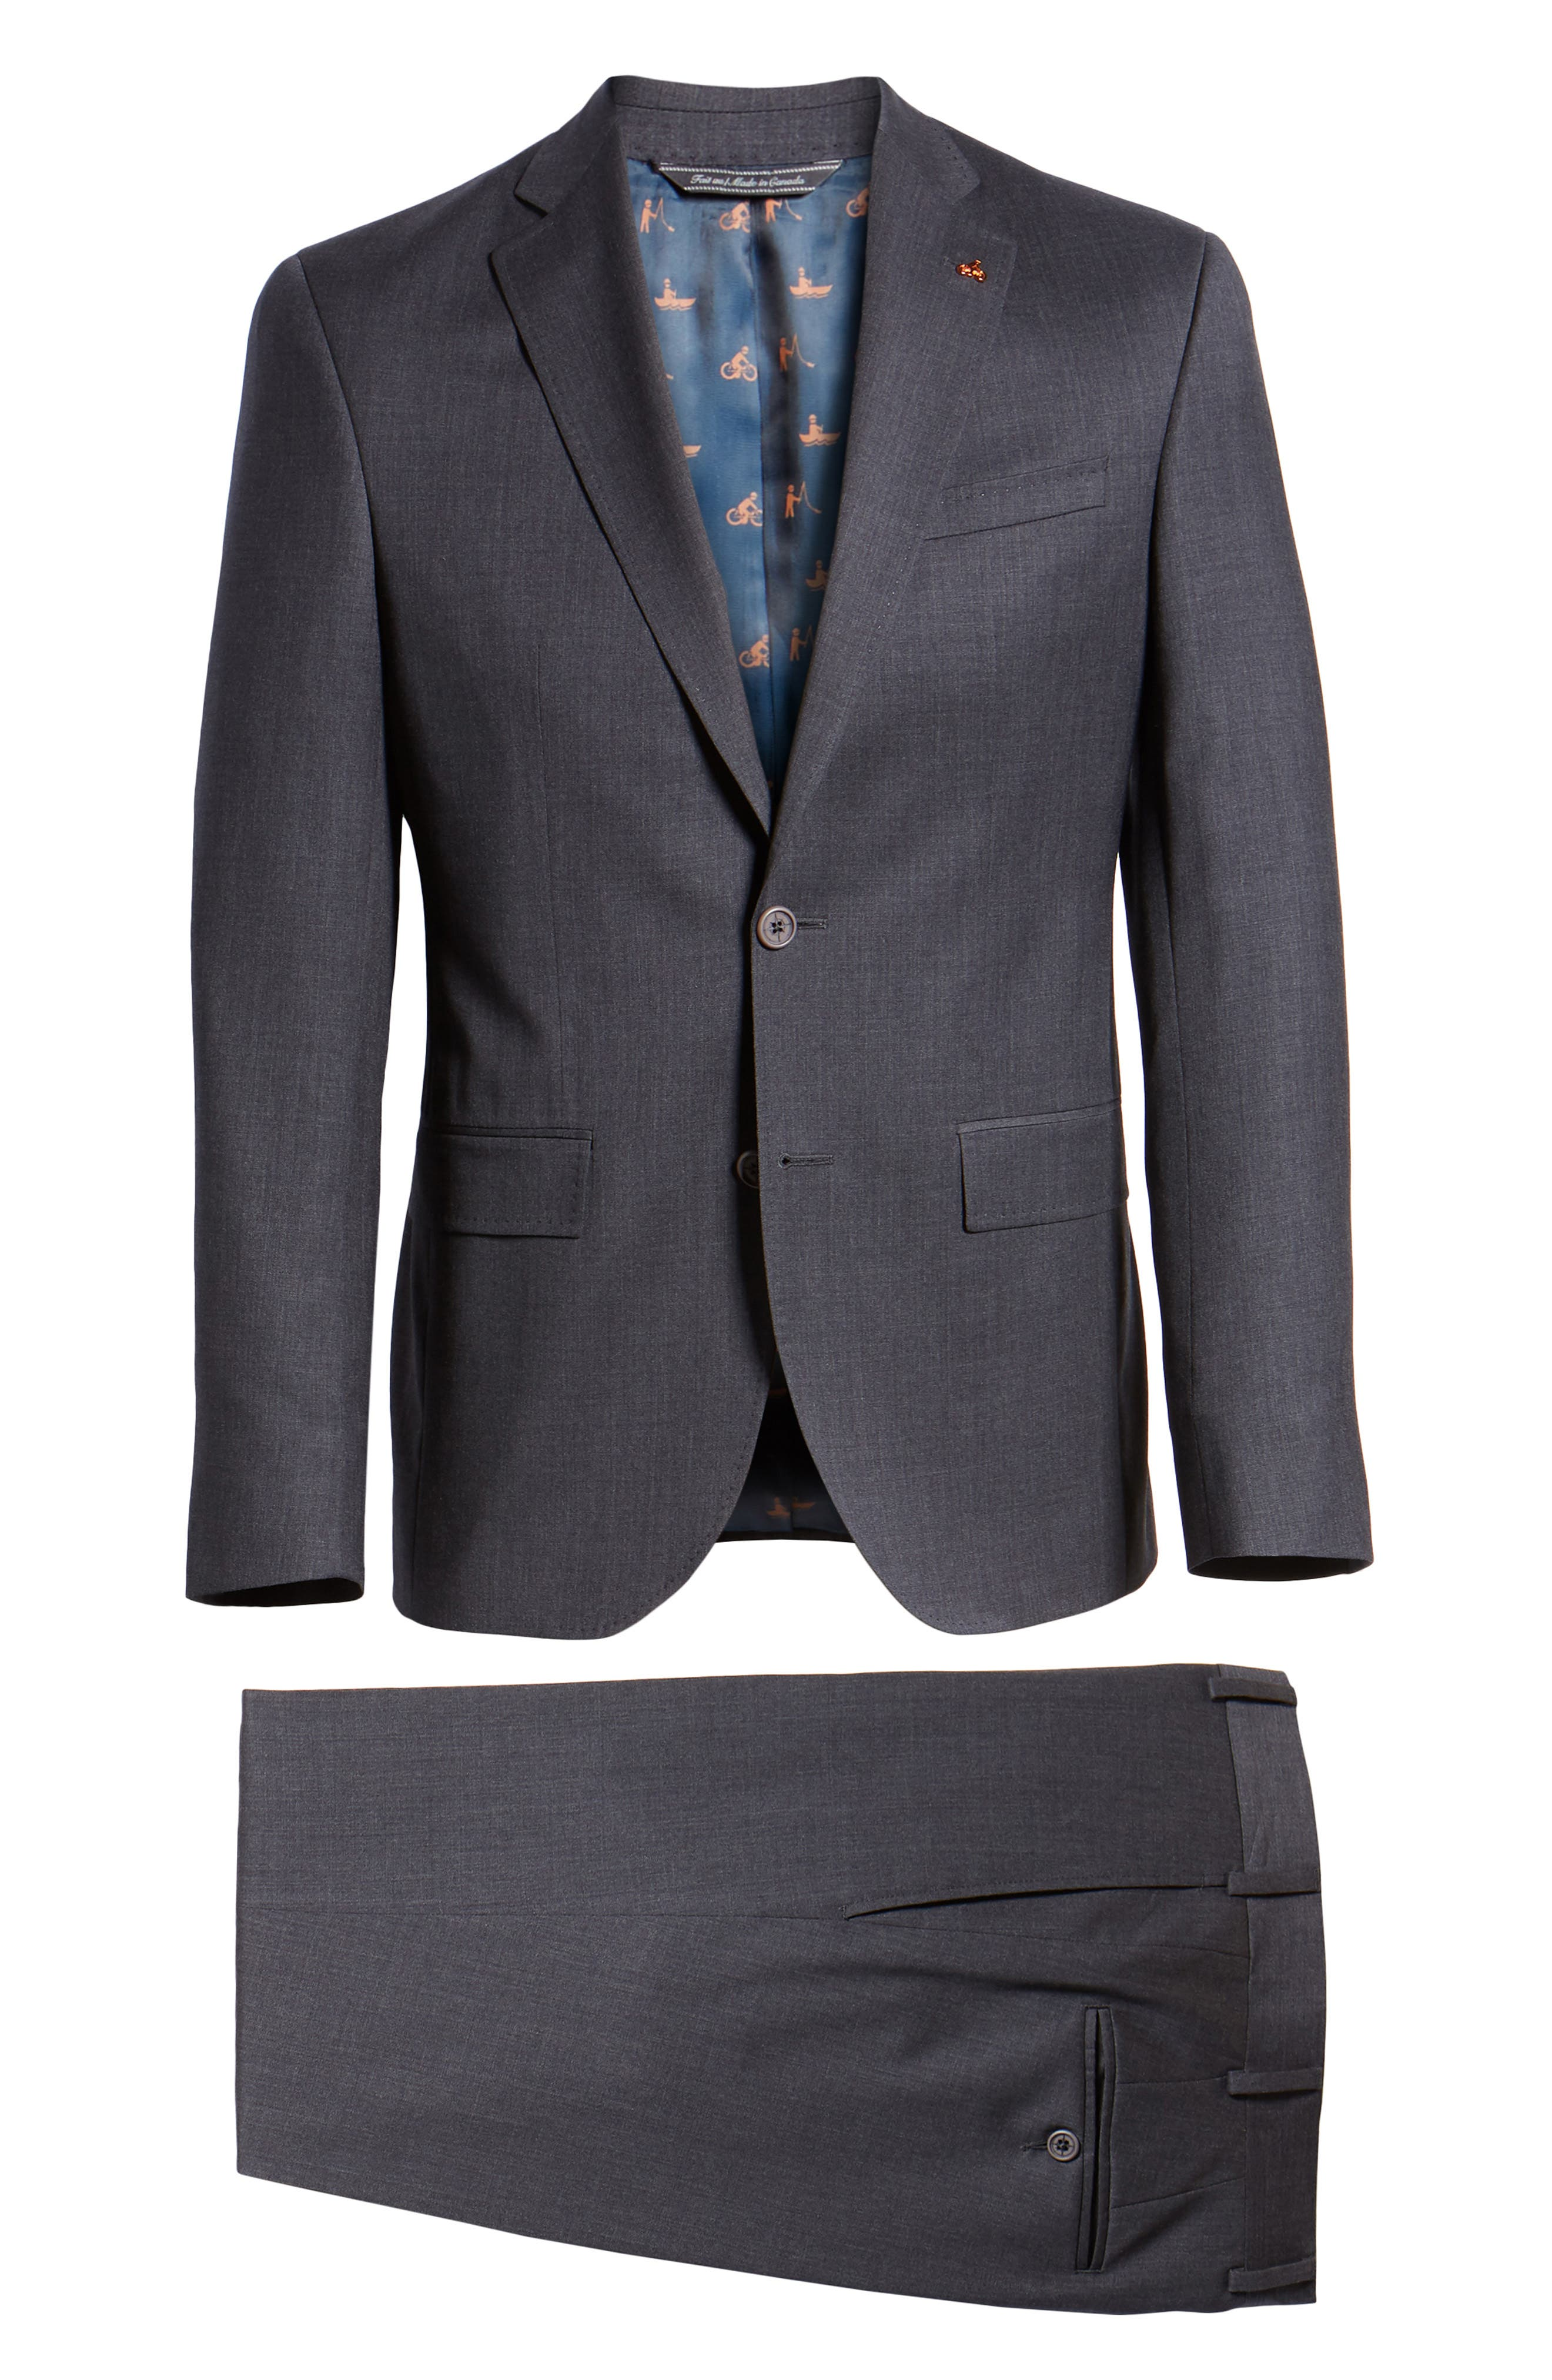 Rove Extra Slim Fit Solid Wool Suit,                             Alternate thumbnail 7, color,                             GREY